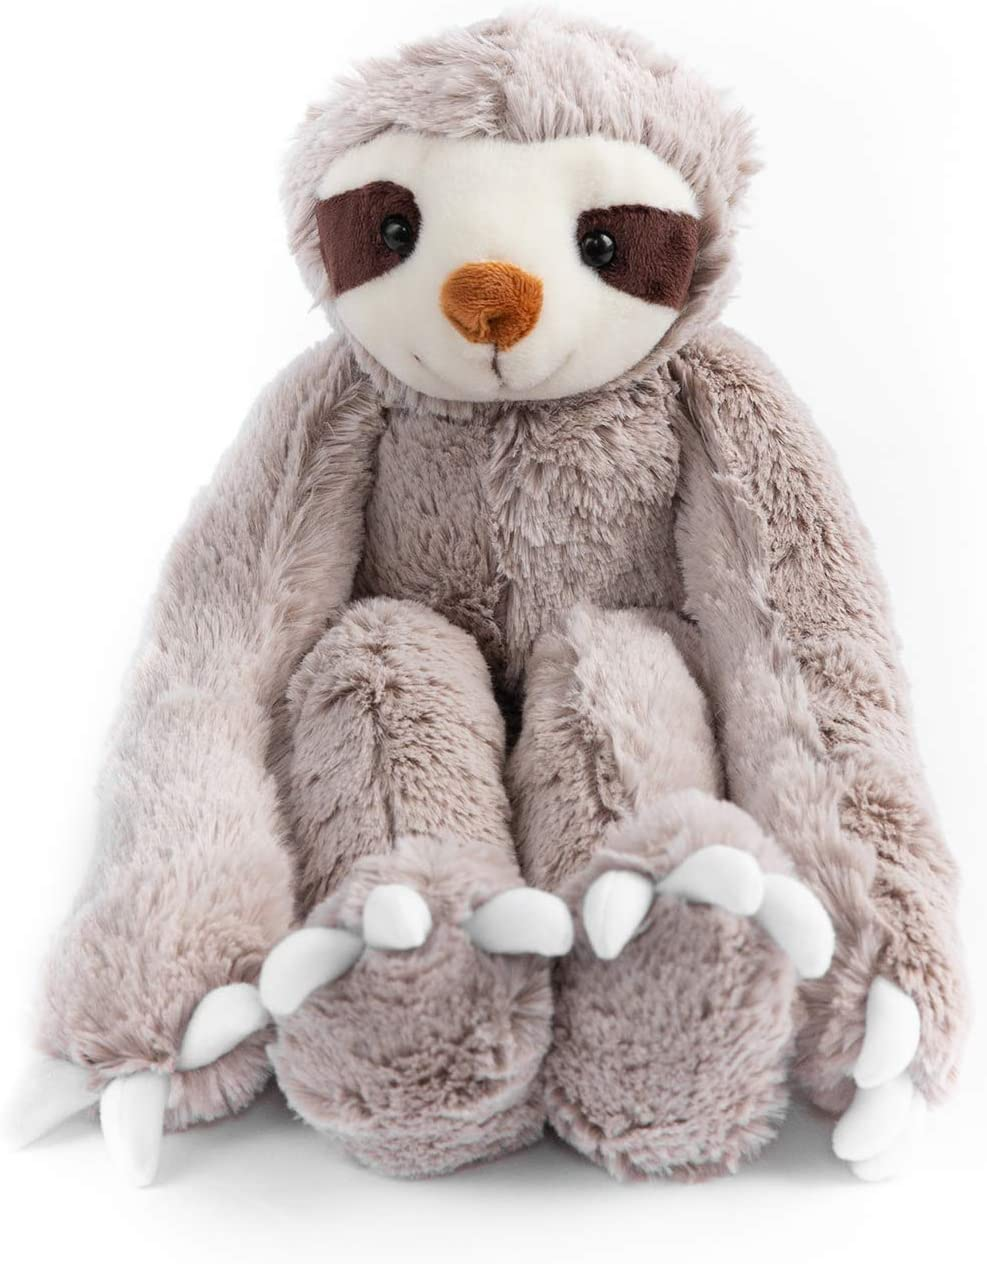 with Velcro Hands Adult, Kids Organic Material,Safe 20.5 Armspan Stuffed Animal Sloth Toy Ultra Soft Children 15 Tall Perfect for Baby